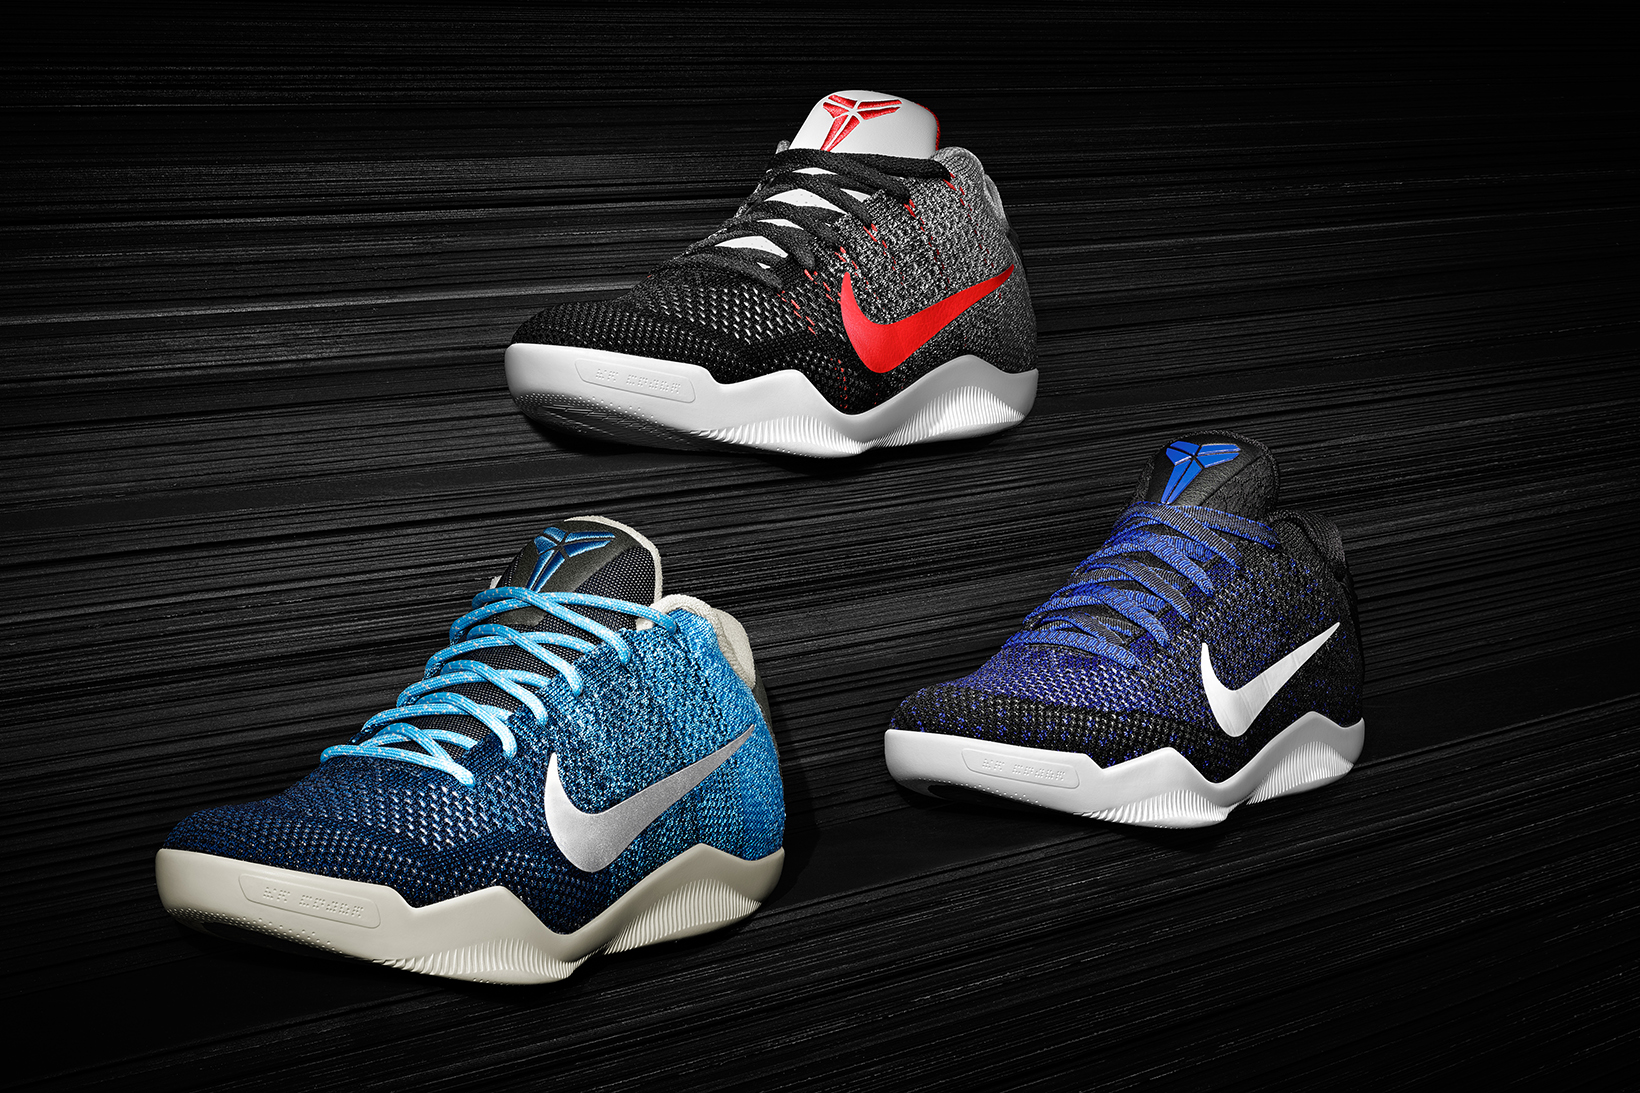 Kobe Bryant Ushers in a New Chapter With Nike via Its Muse Pack